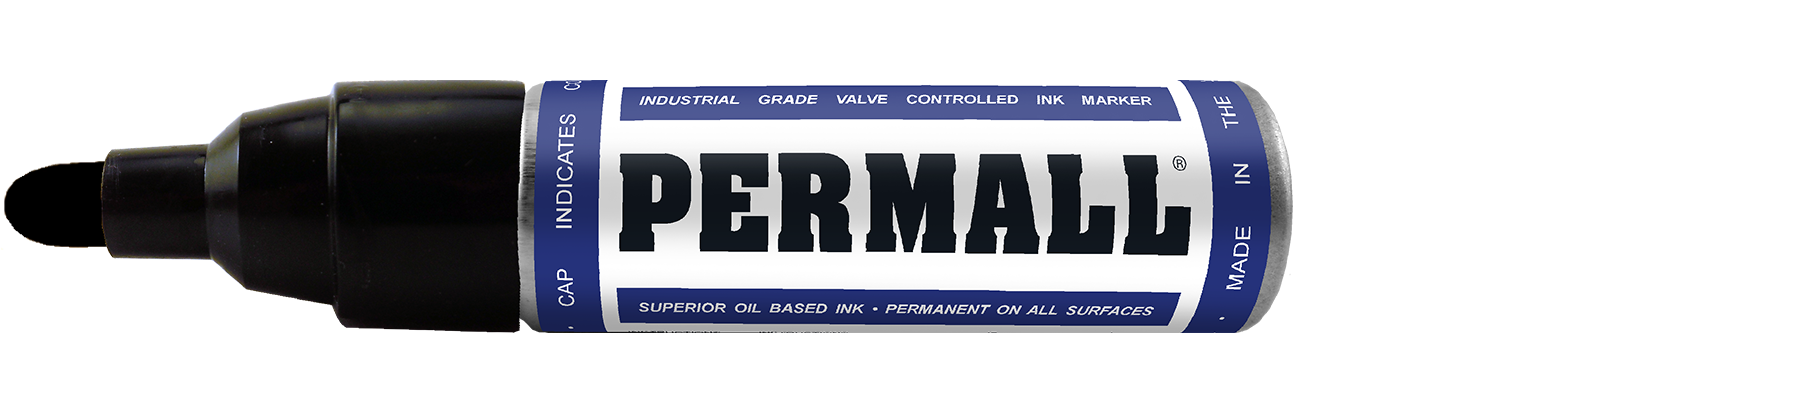 PERMALL Oil Based Ink Marker